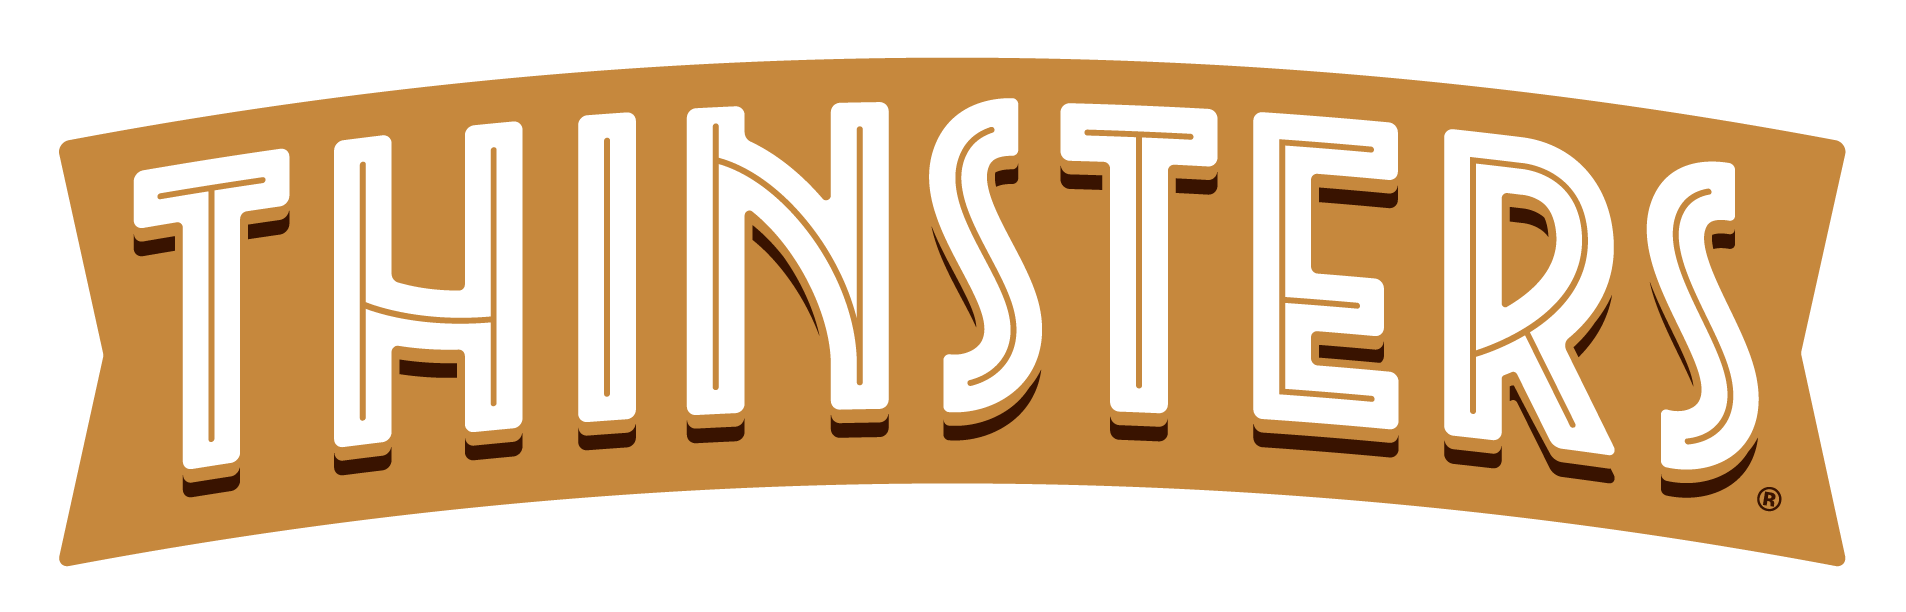 Thinsters_PP_Logo-01.png